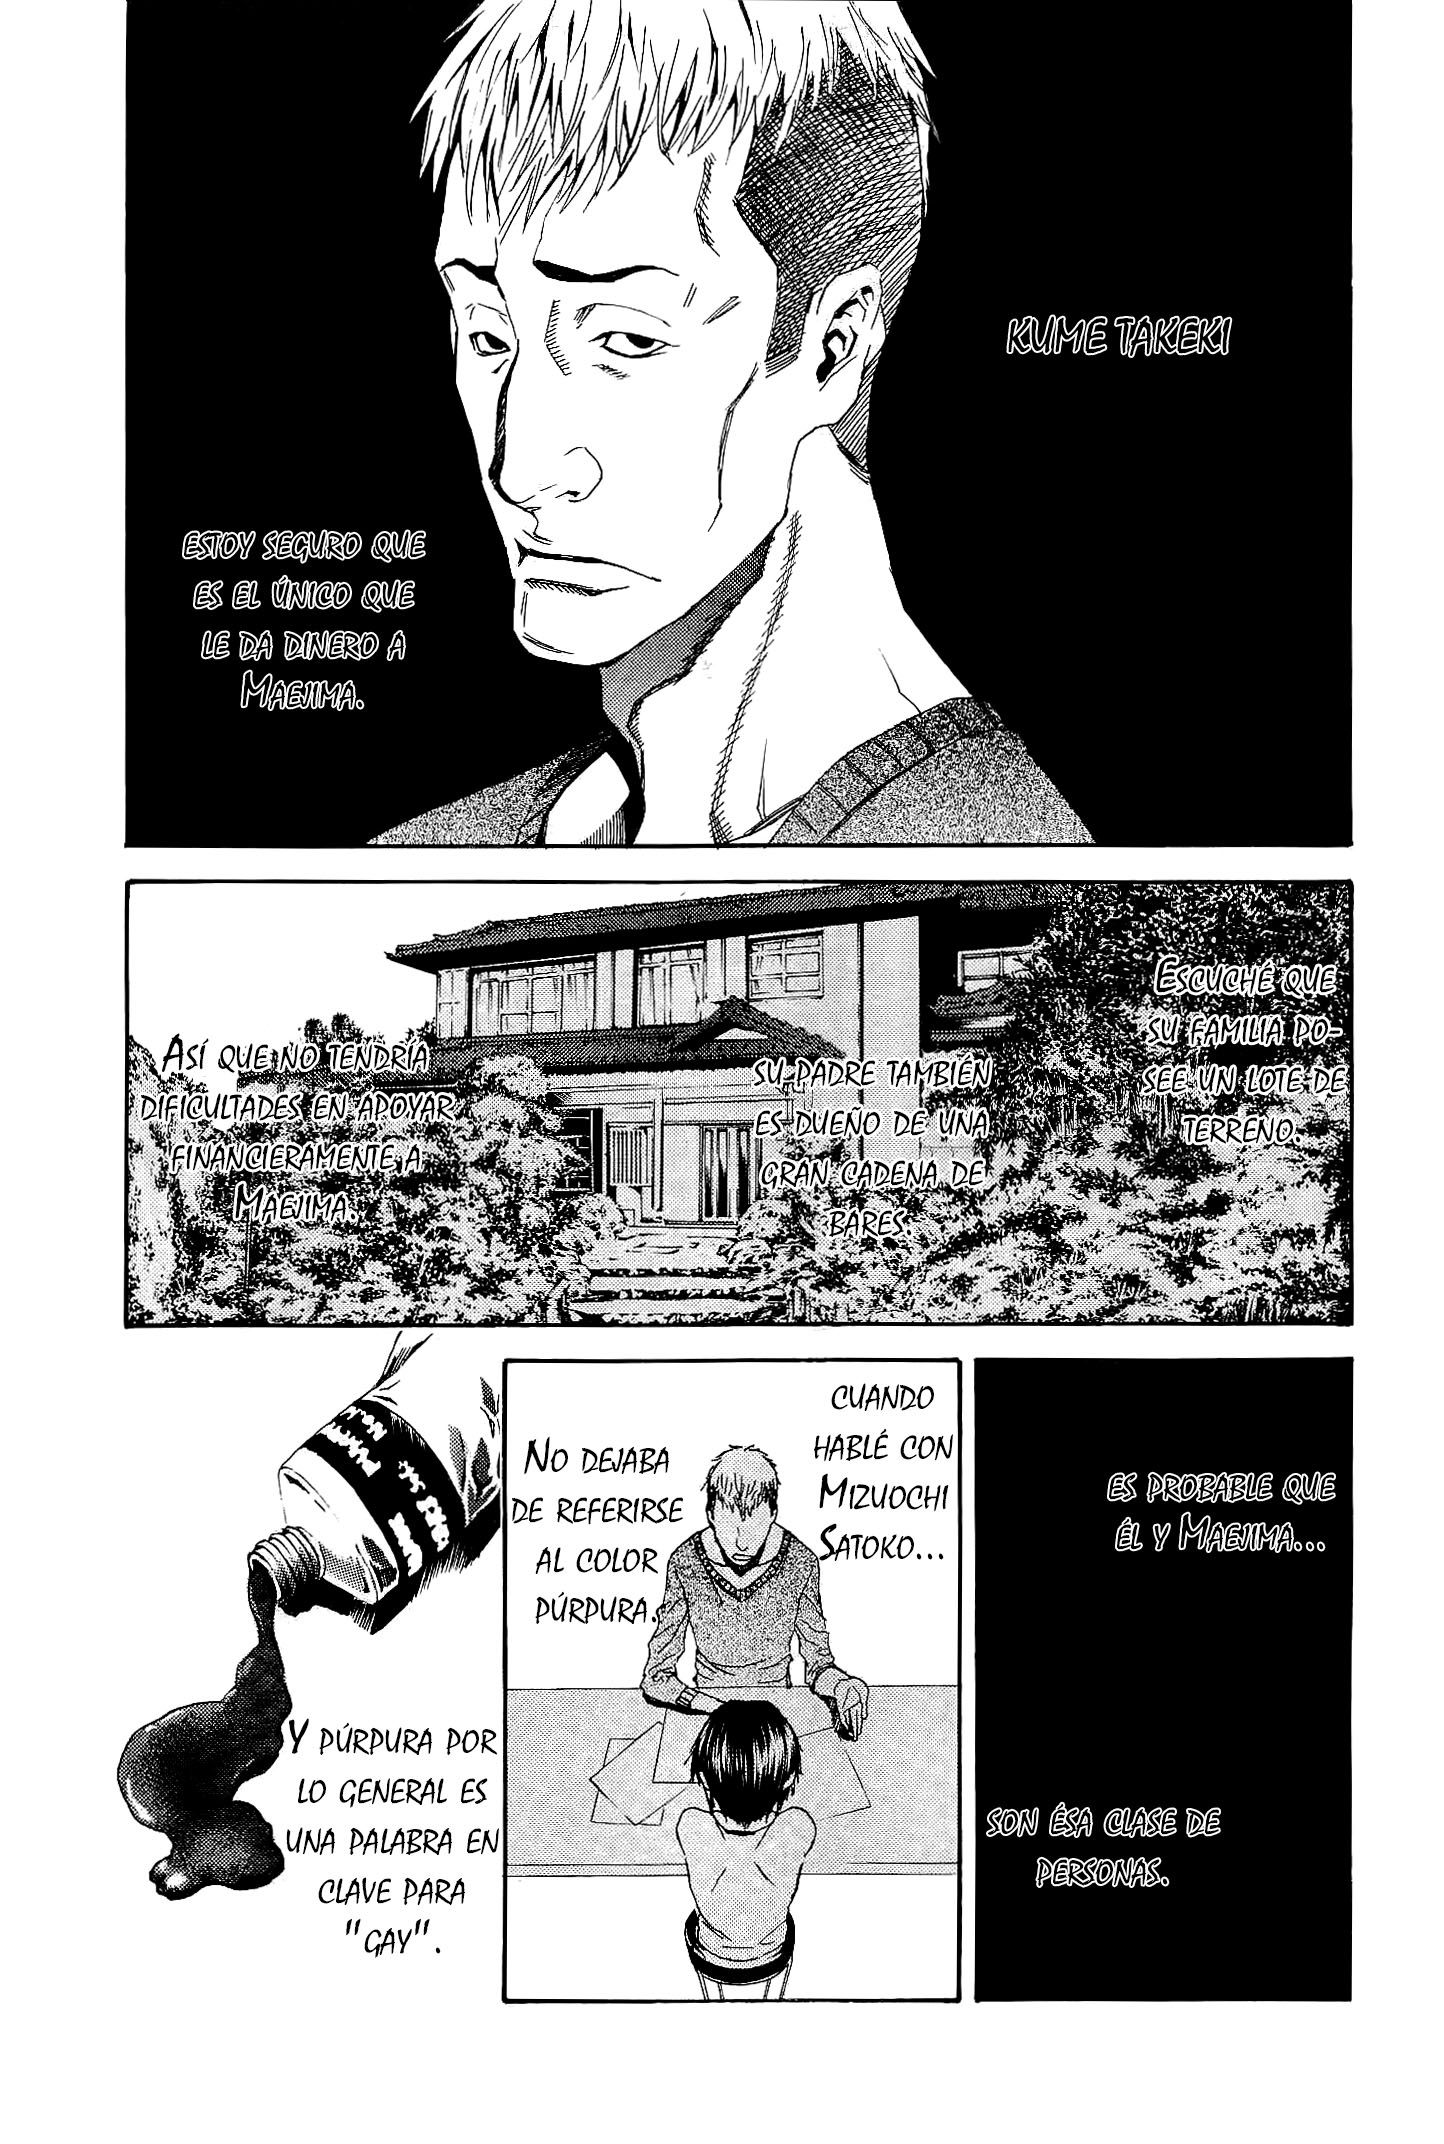 http://c5.ninemanga.com/es_manga/3/19523/468638/8b02381898b666f4e5516bfbb3d10c51.jpg Page 15